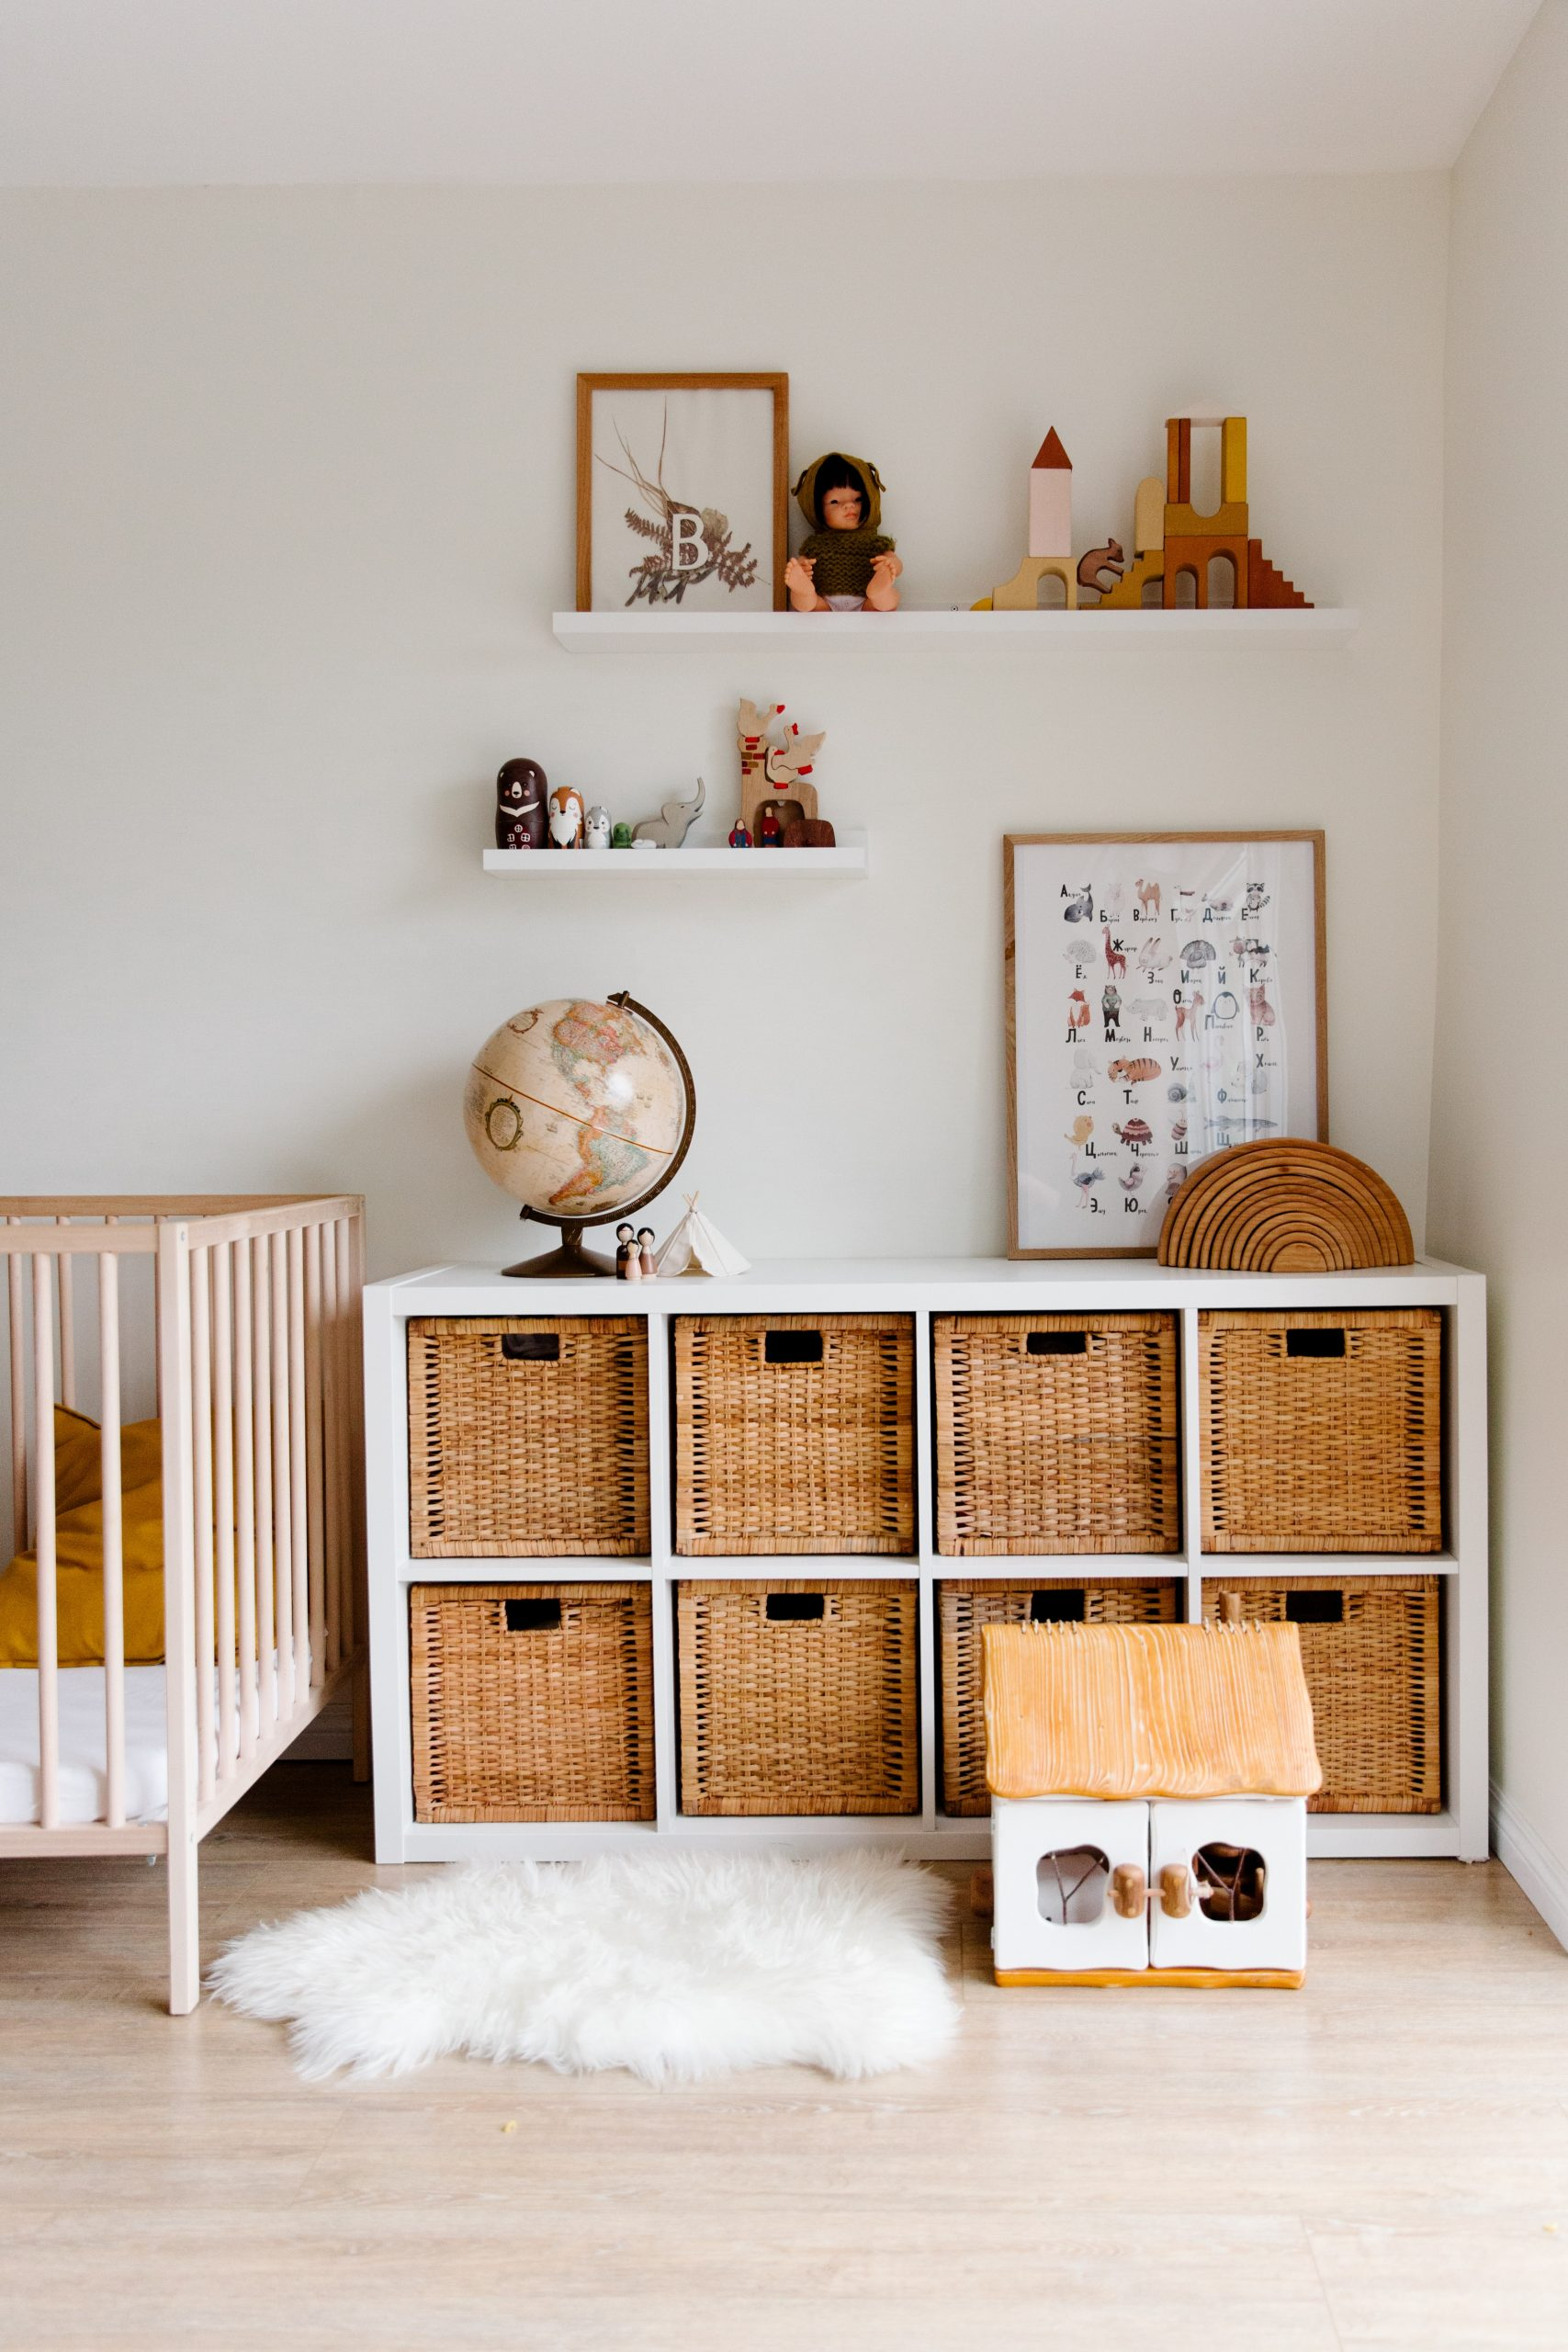 organized child's bedroom with bins inside of a white cubby shelf